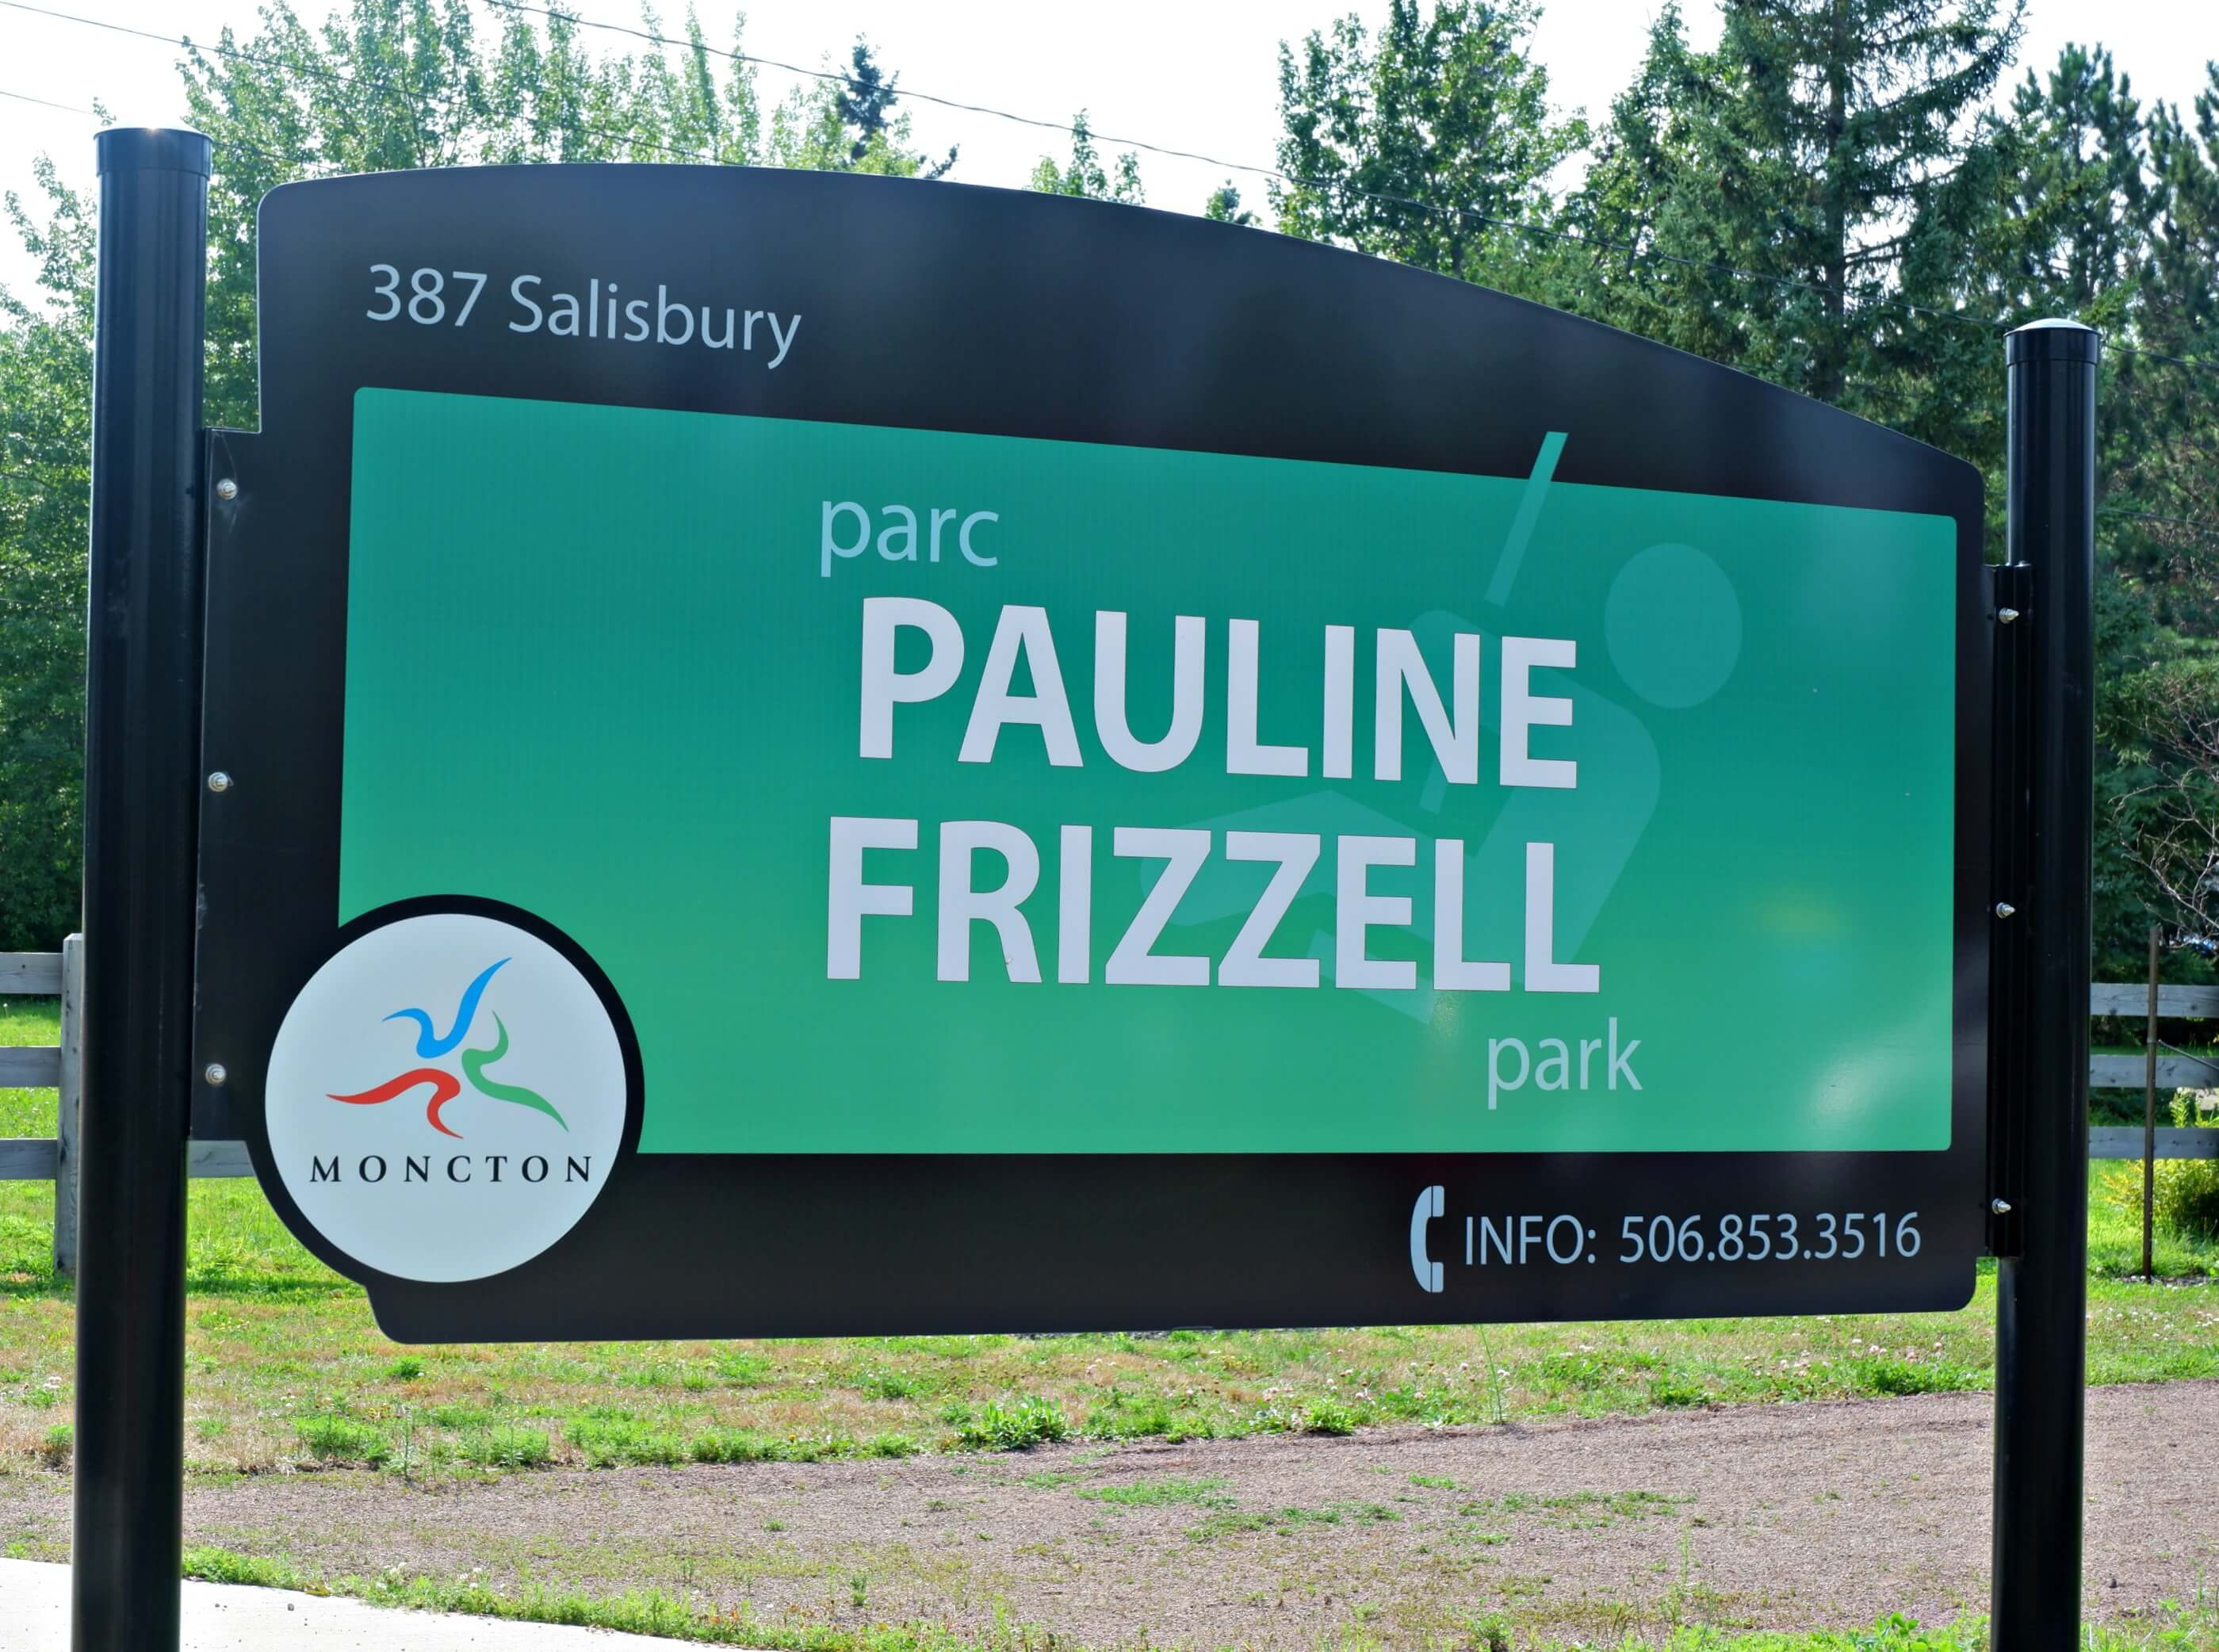 pauline frizzell park playground moncton riverview dieppe best pickle planet review